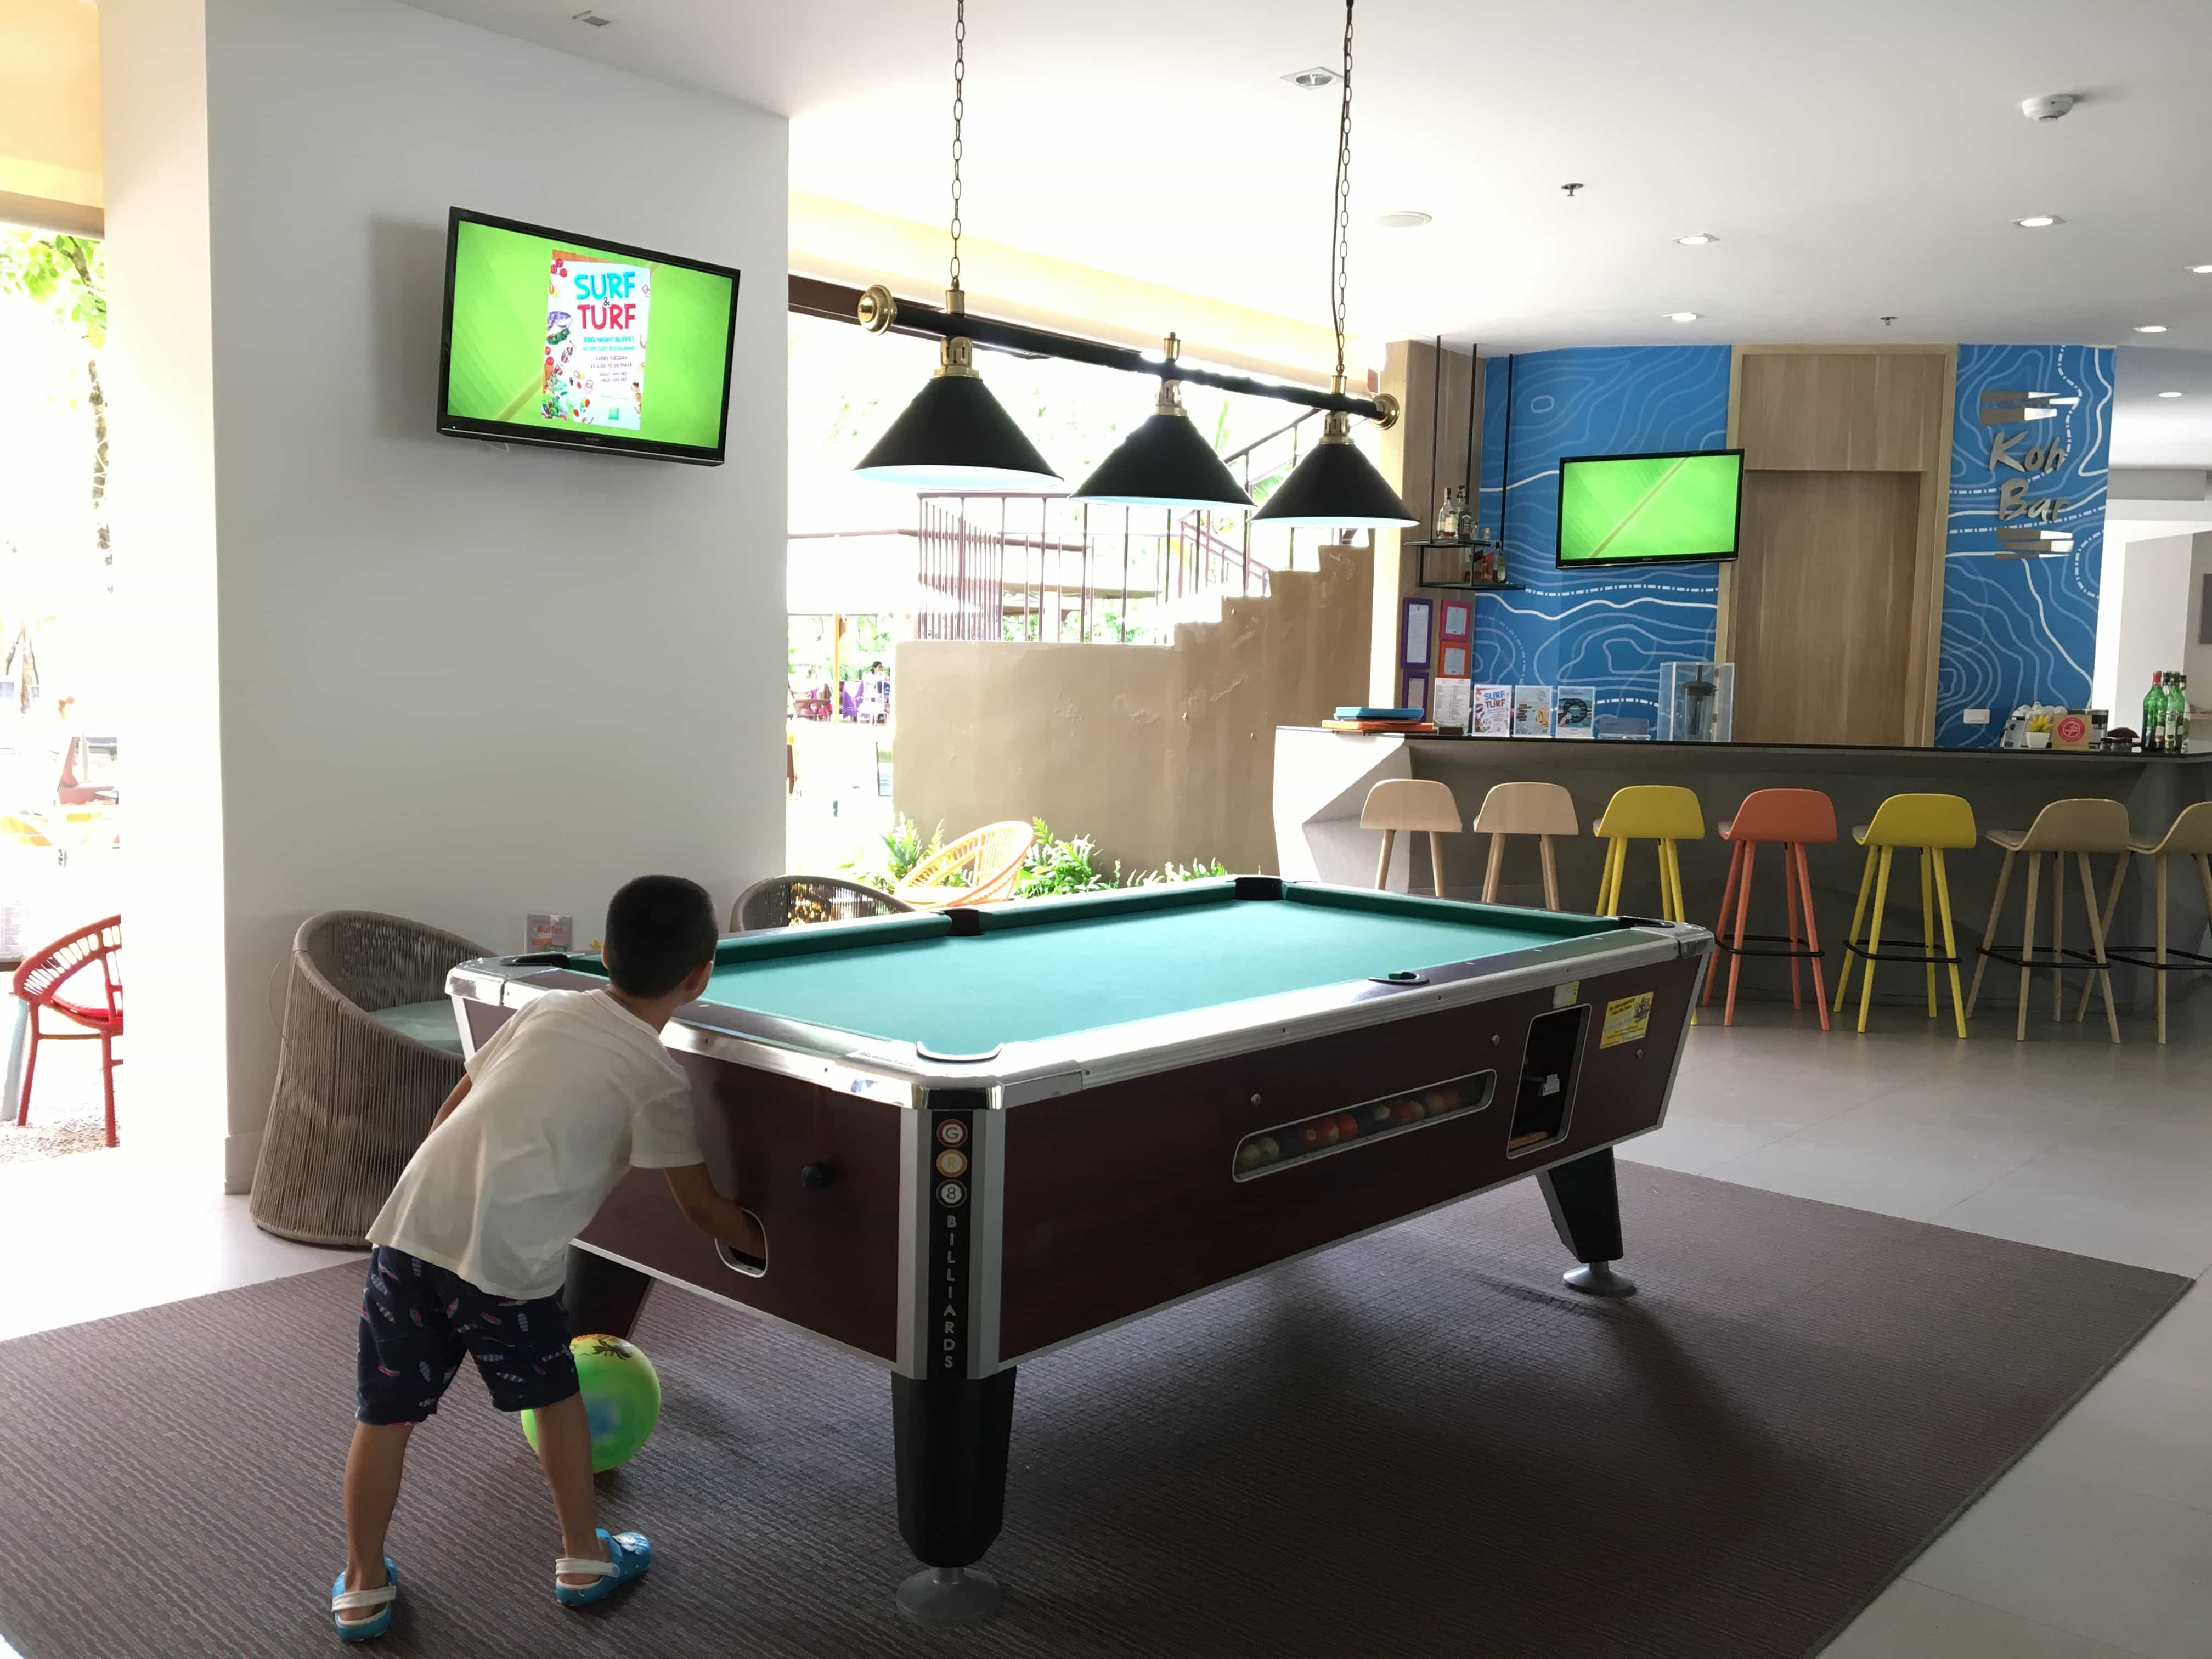 Relaxing playing pool at Thailand beaches